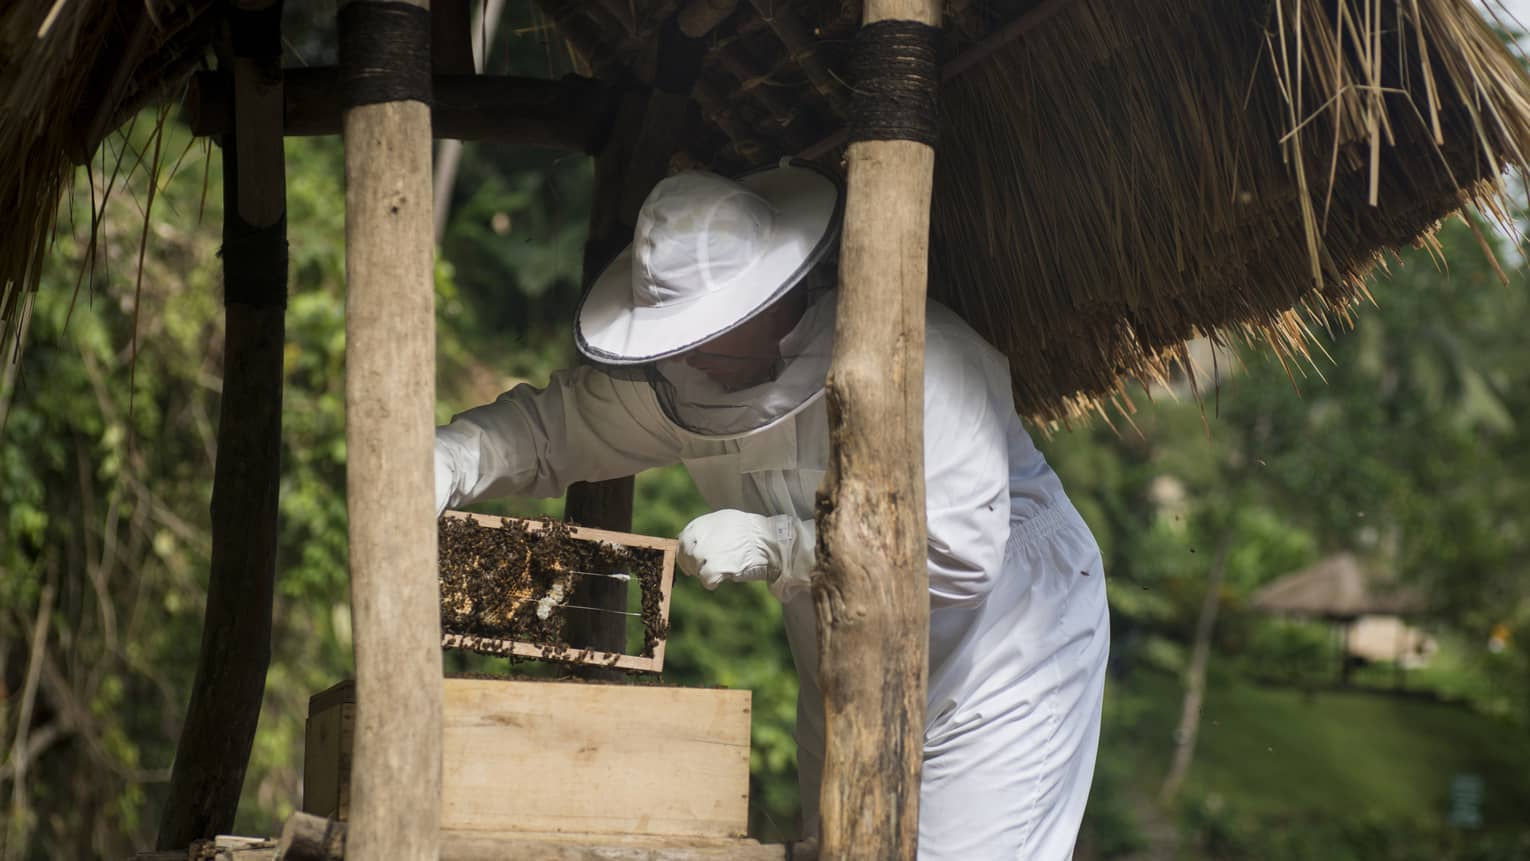 Beekeeper in white hat with net, suit and gloves holds wood box covered with bees between under small thatched-roof hut